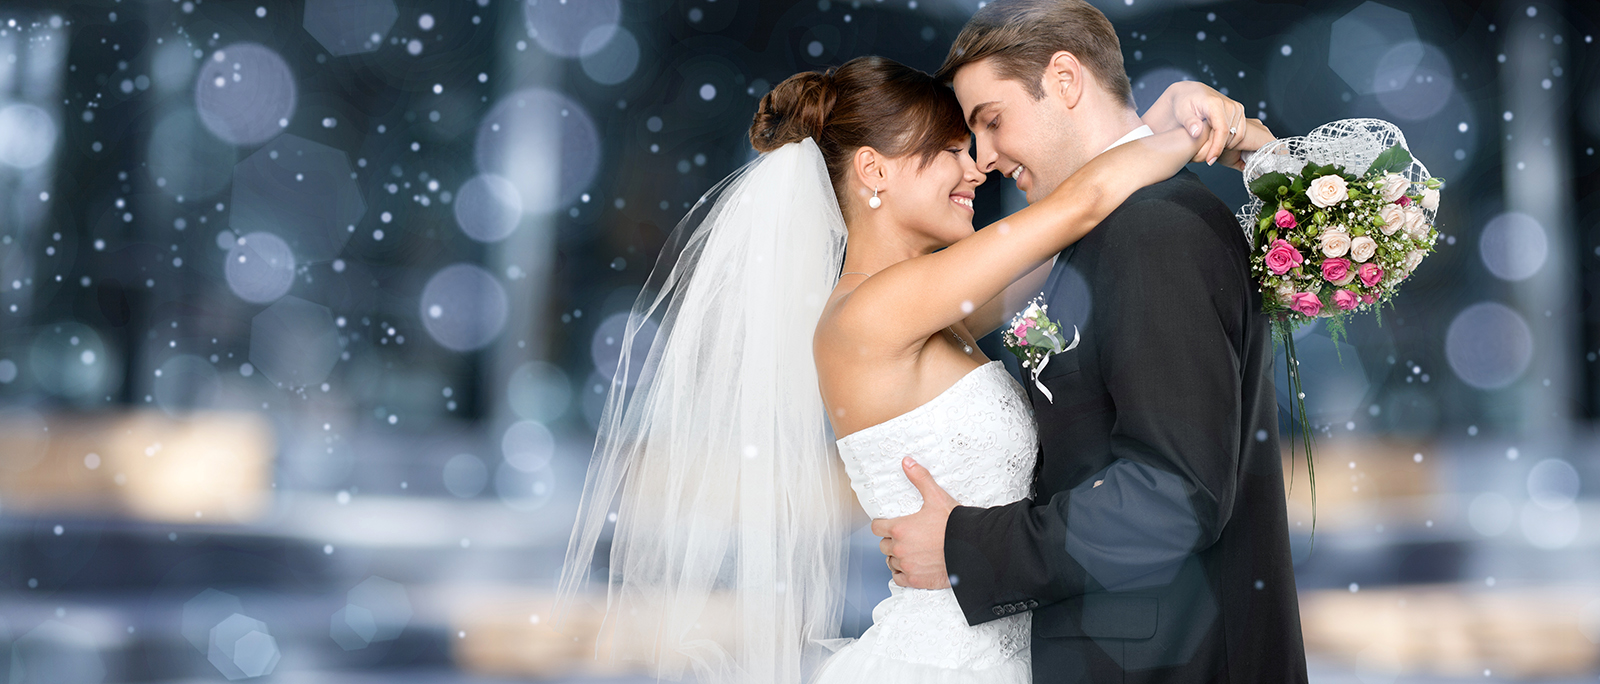 , 7 Tips to a Stress-Free and Beautiful Wedding, Saubio Making Wealth